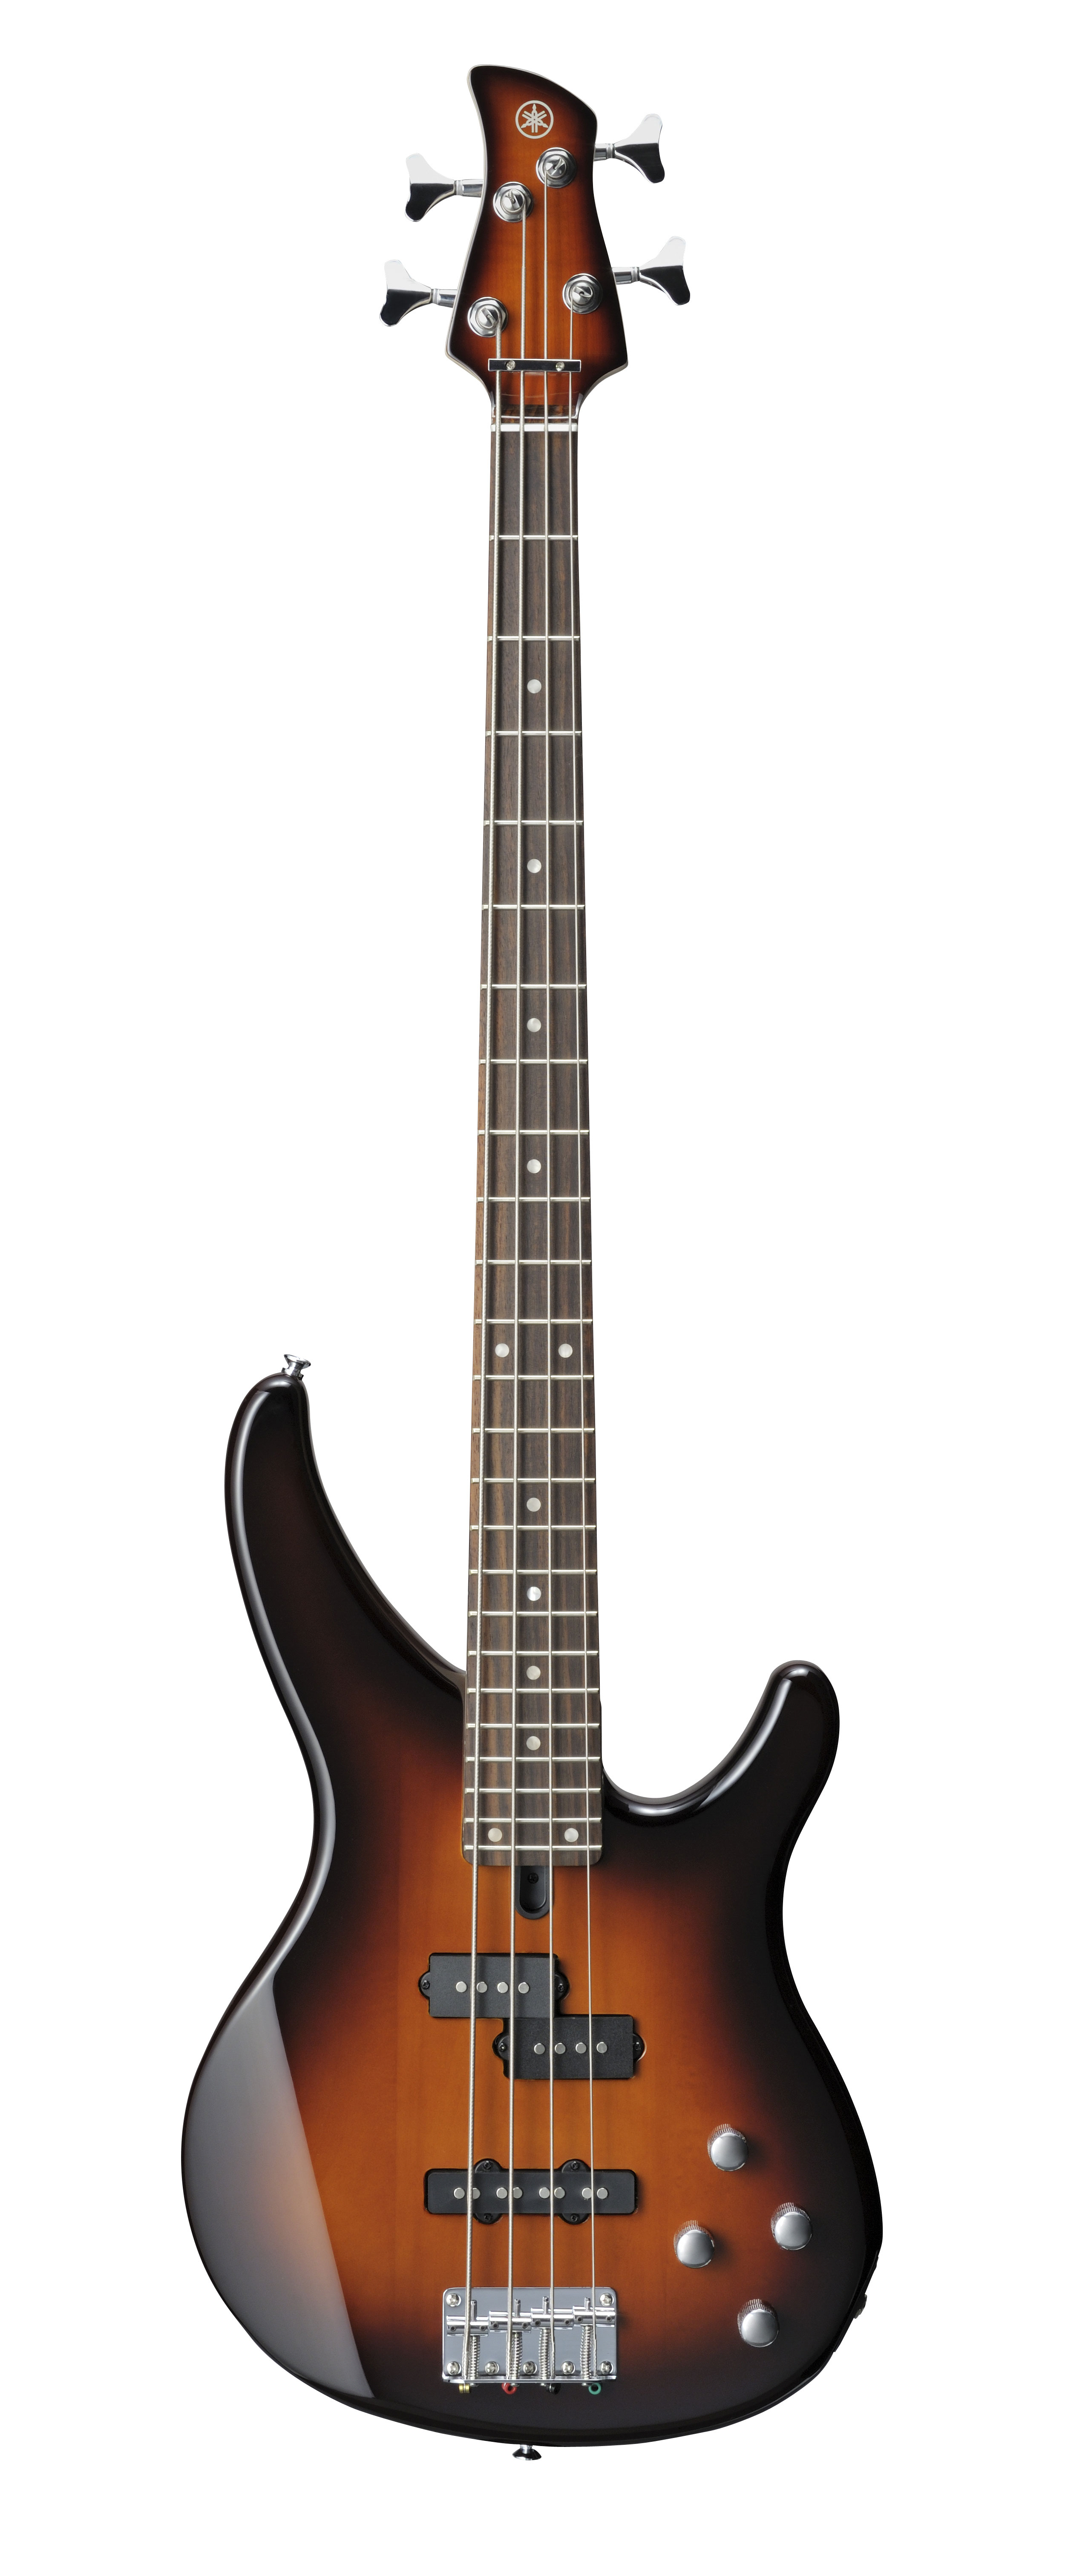 yamaha trbx204 4 string electric bass guitar in bright red metallic galaxy black grey metallic. Black Bedroom Furniture Sets. Home Design Ideas